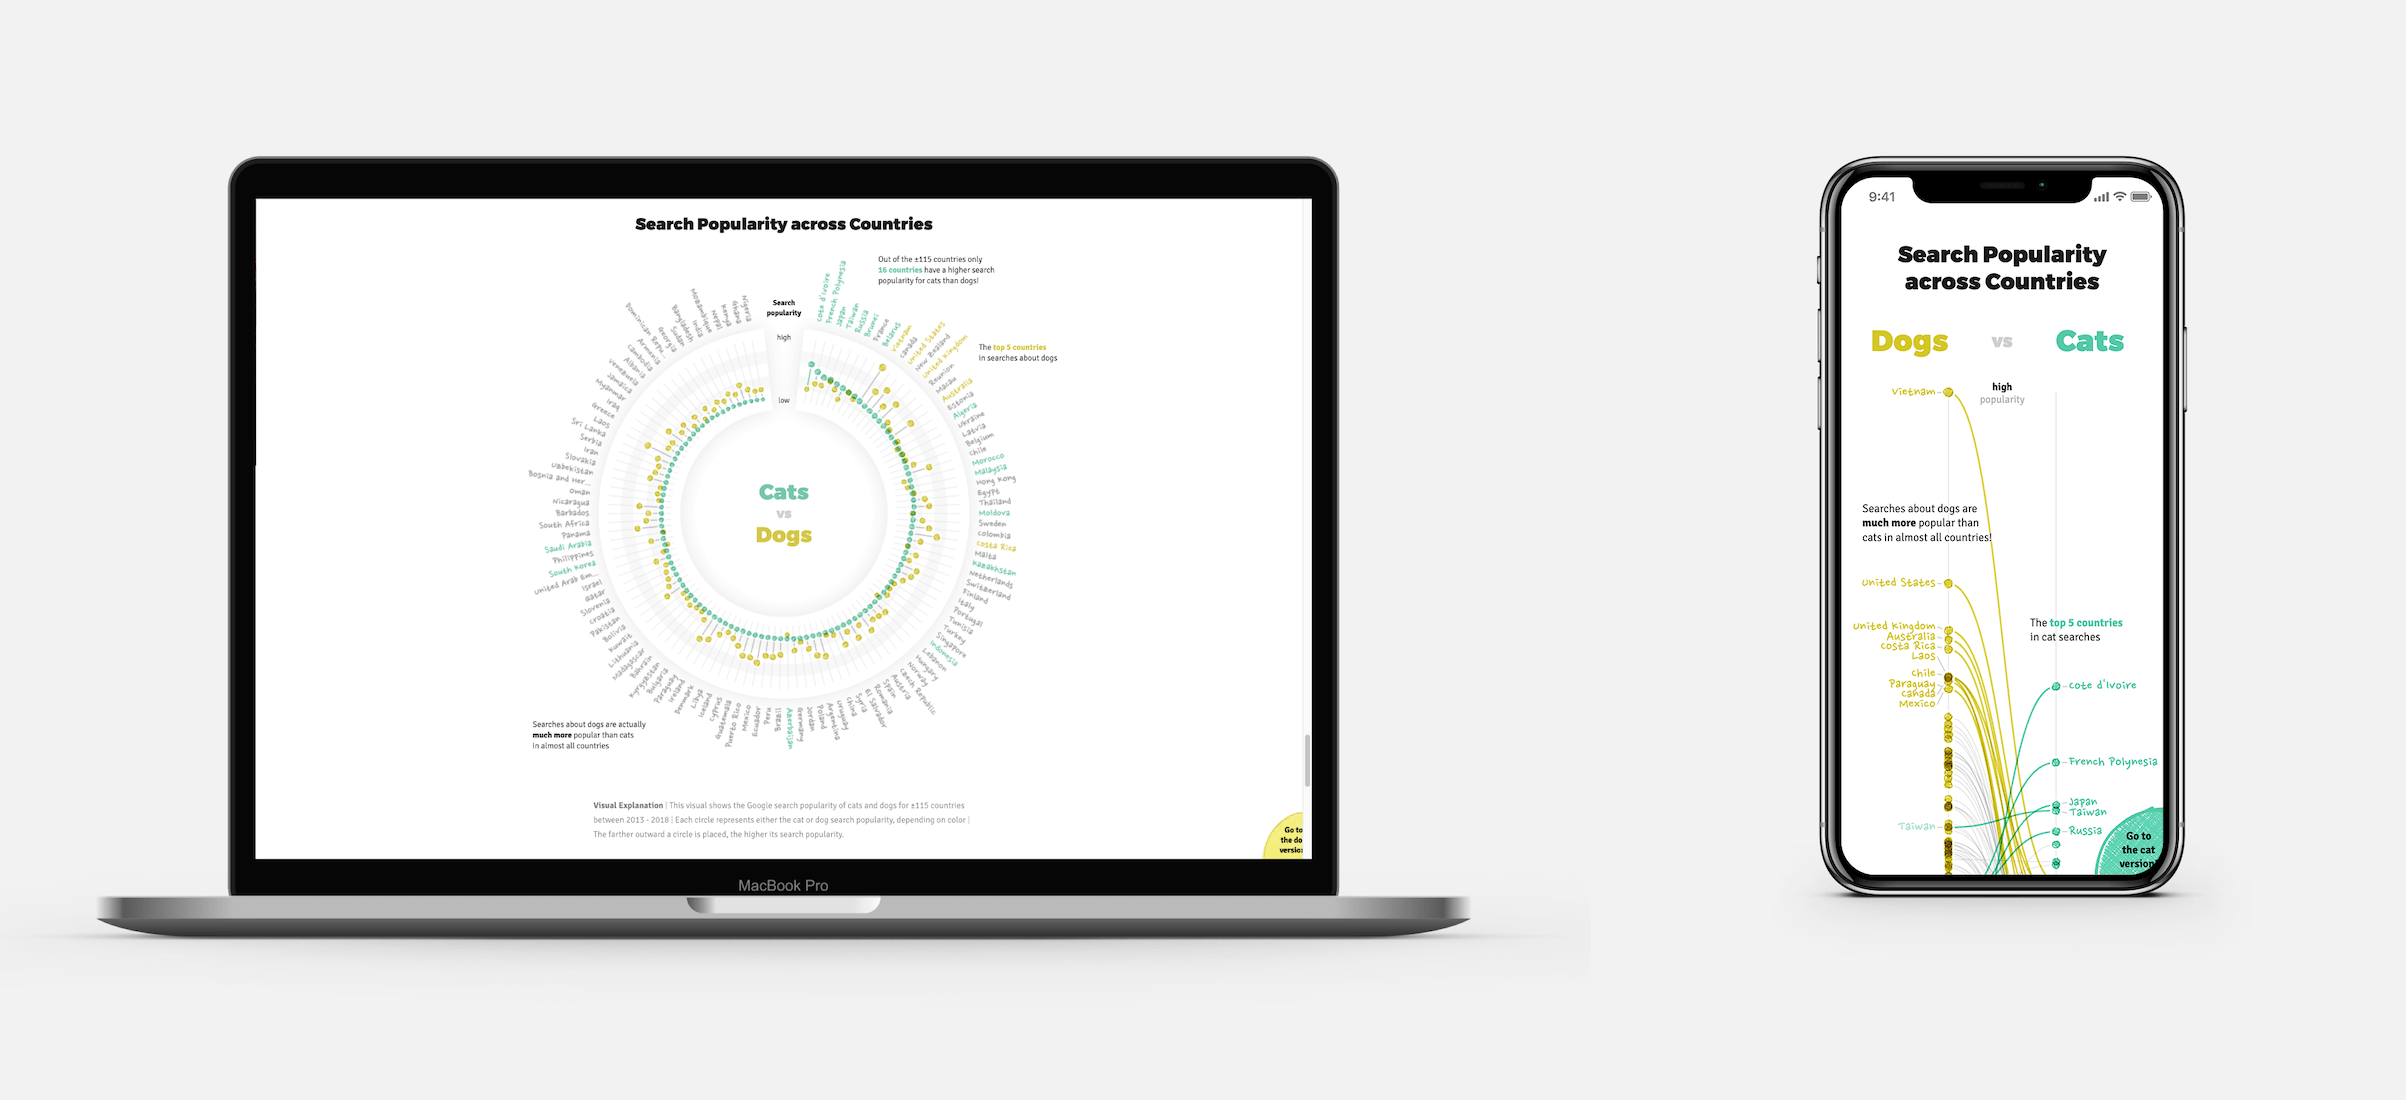 Sharing several different techniques you can show (the same) data visualization differently on mobile and desktop